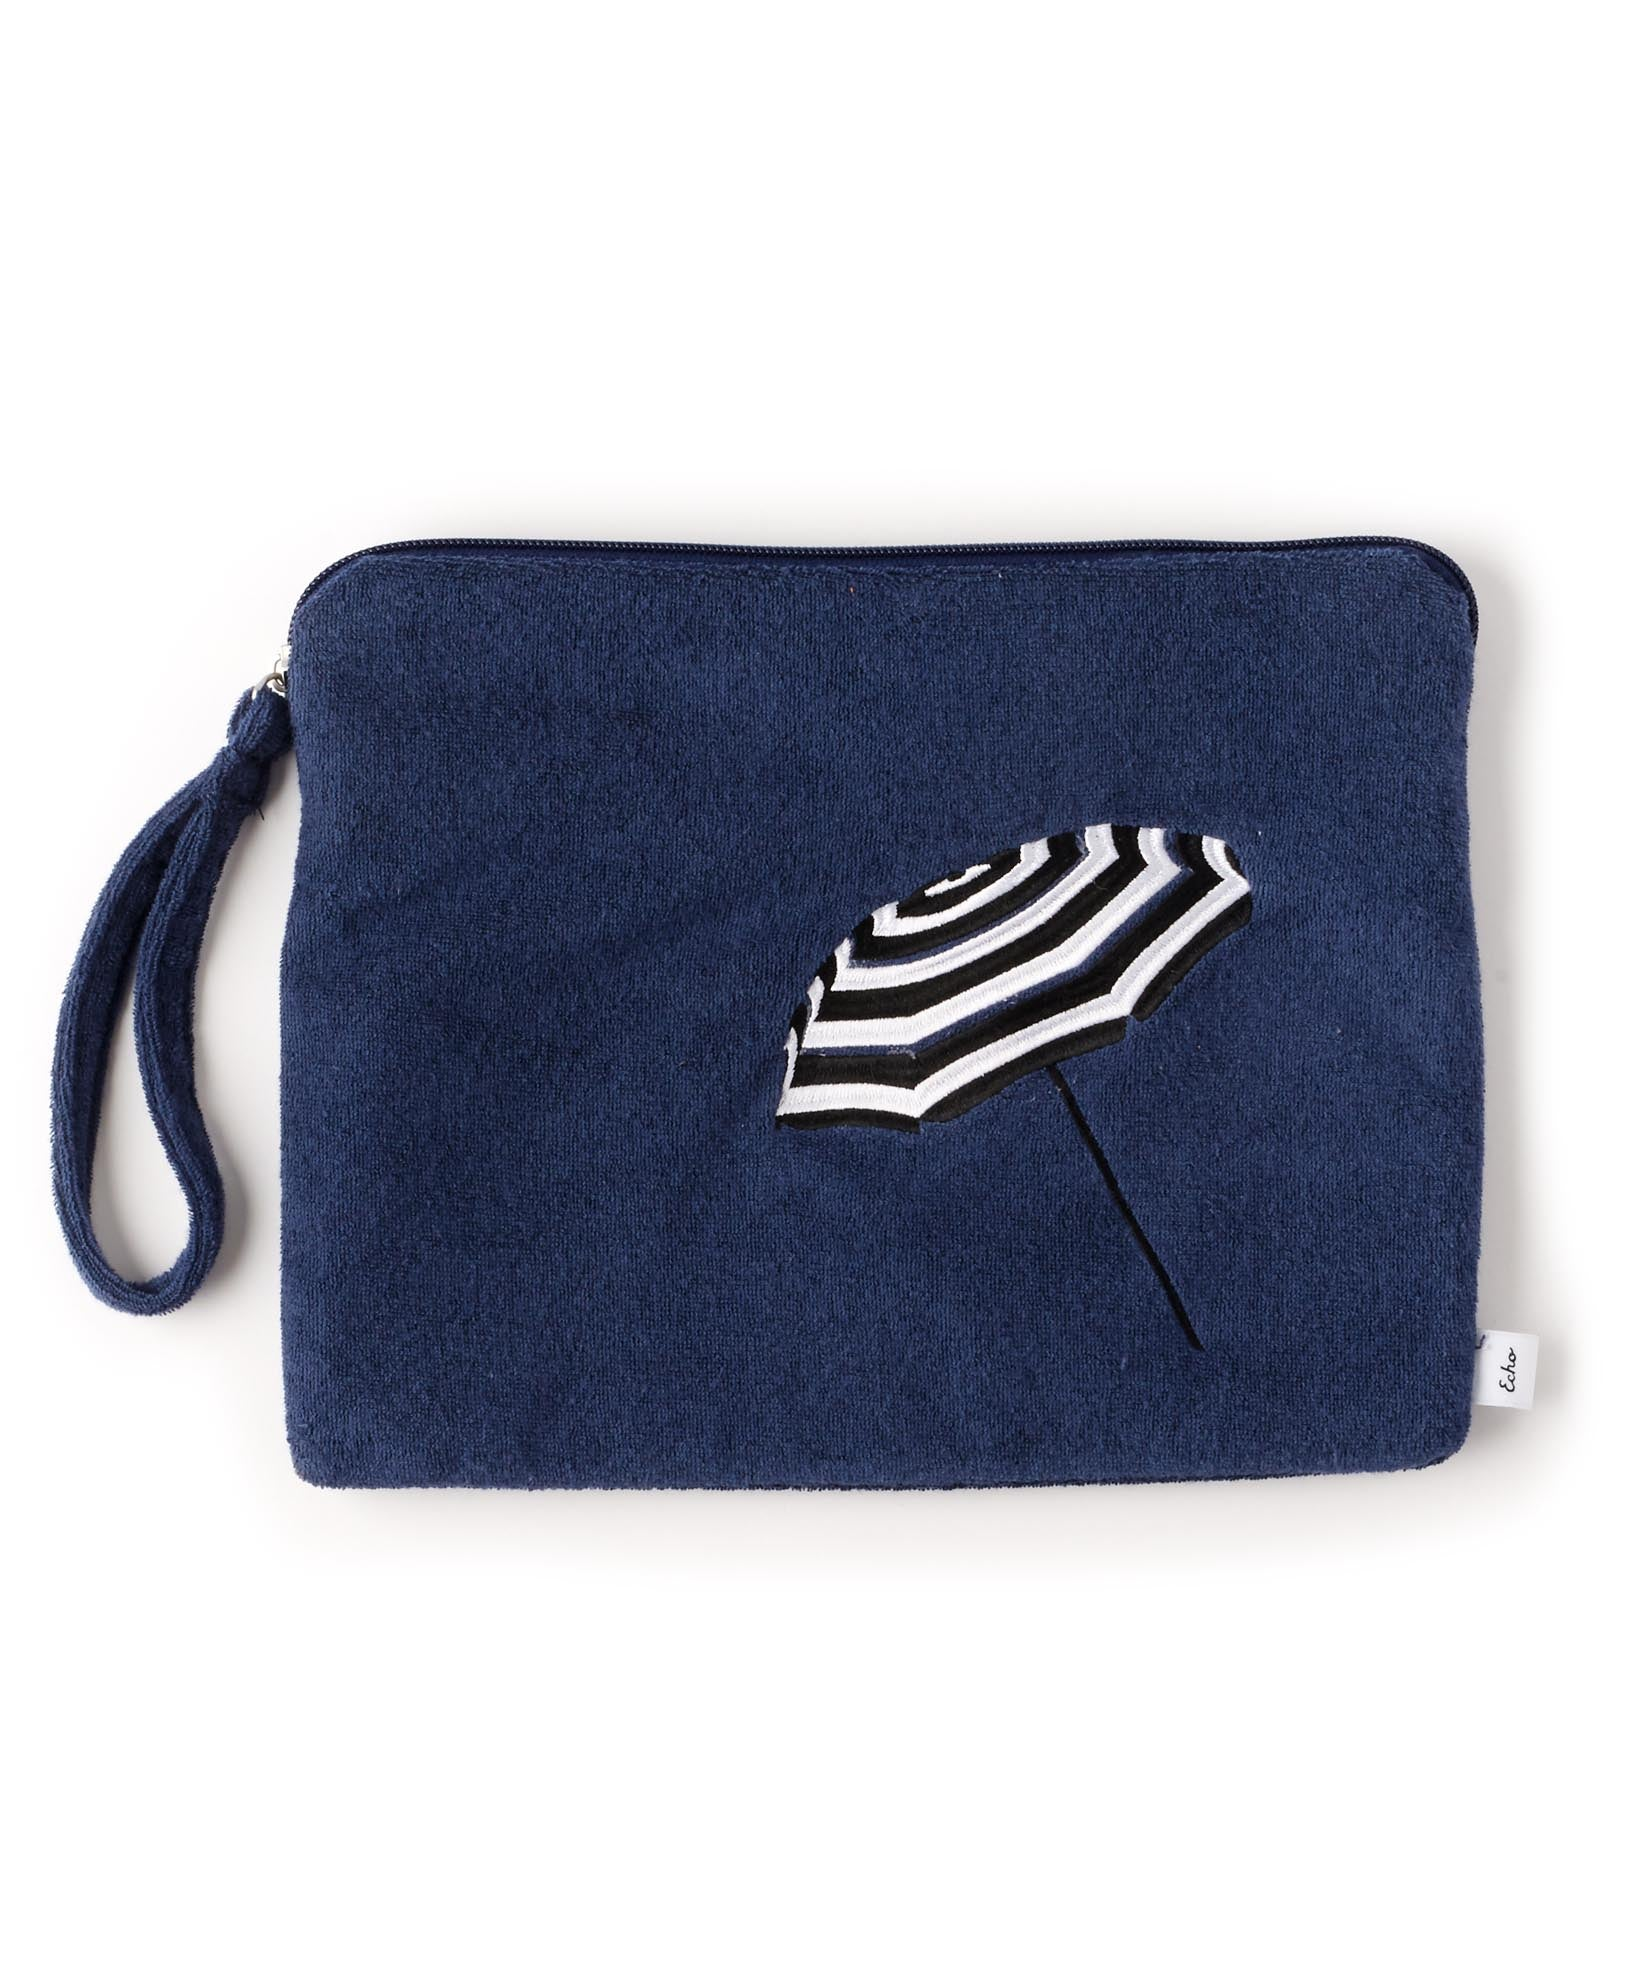 Navy - Umbrella Terry Bali Bikini Bag